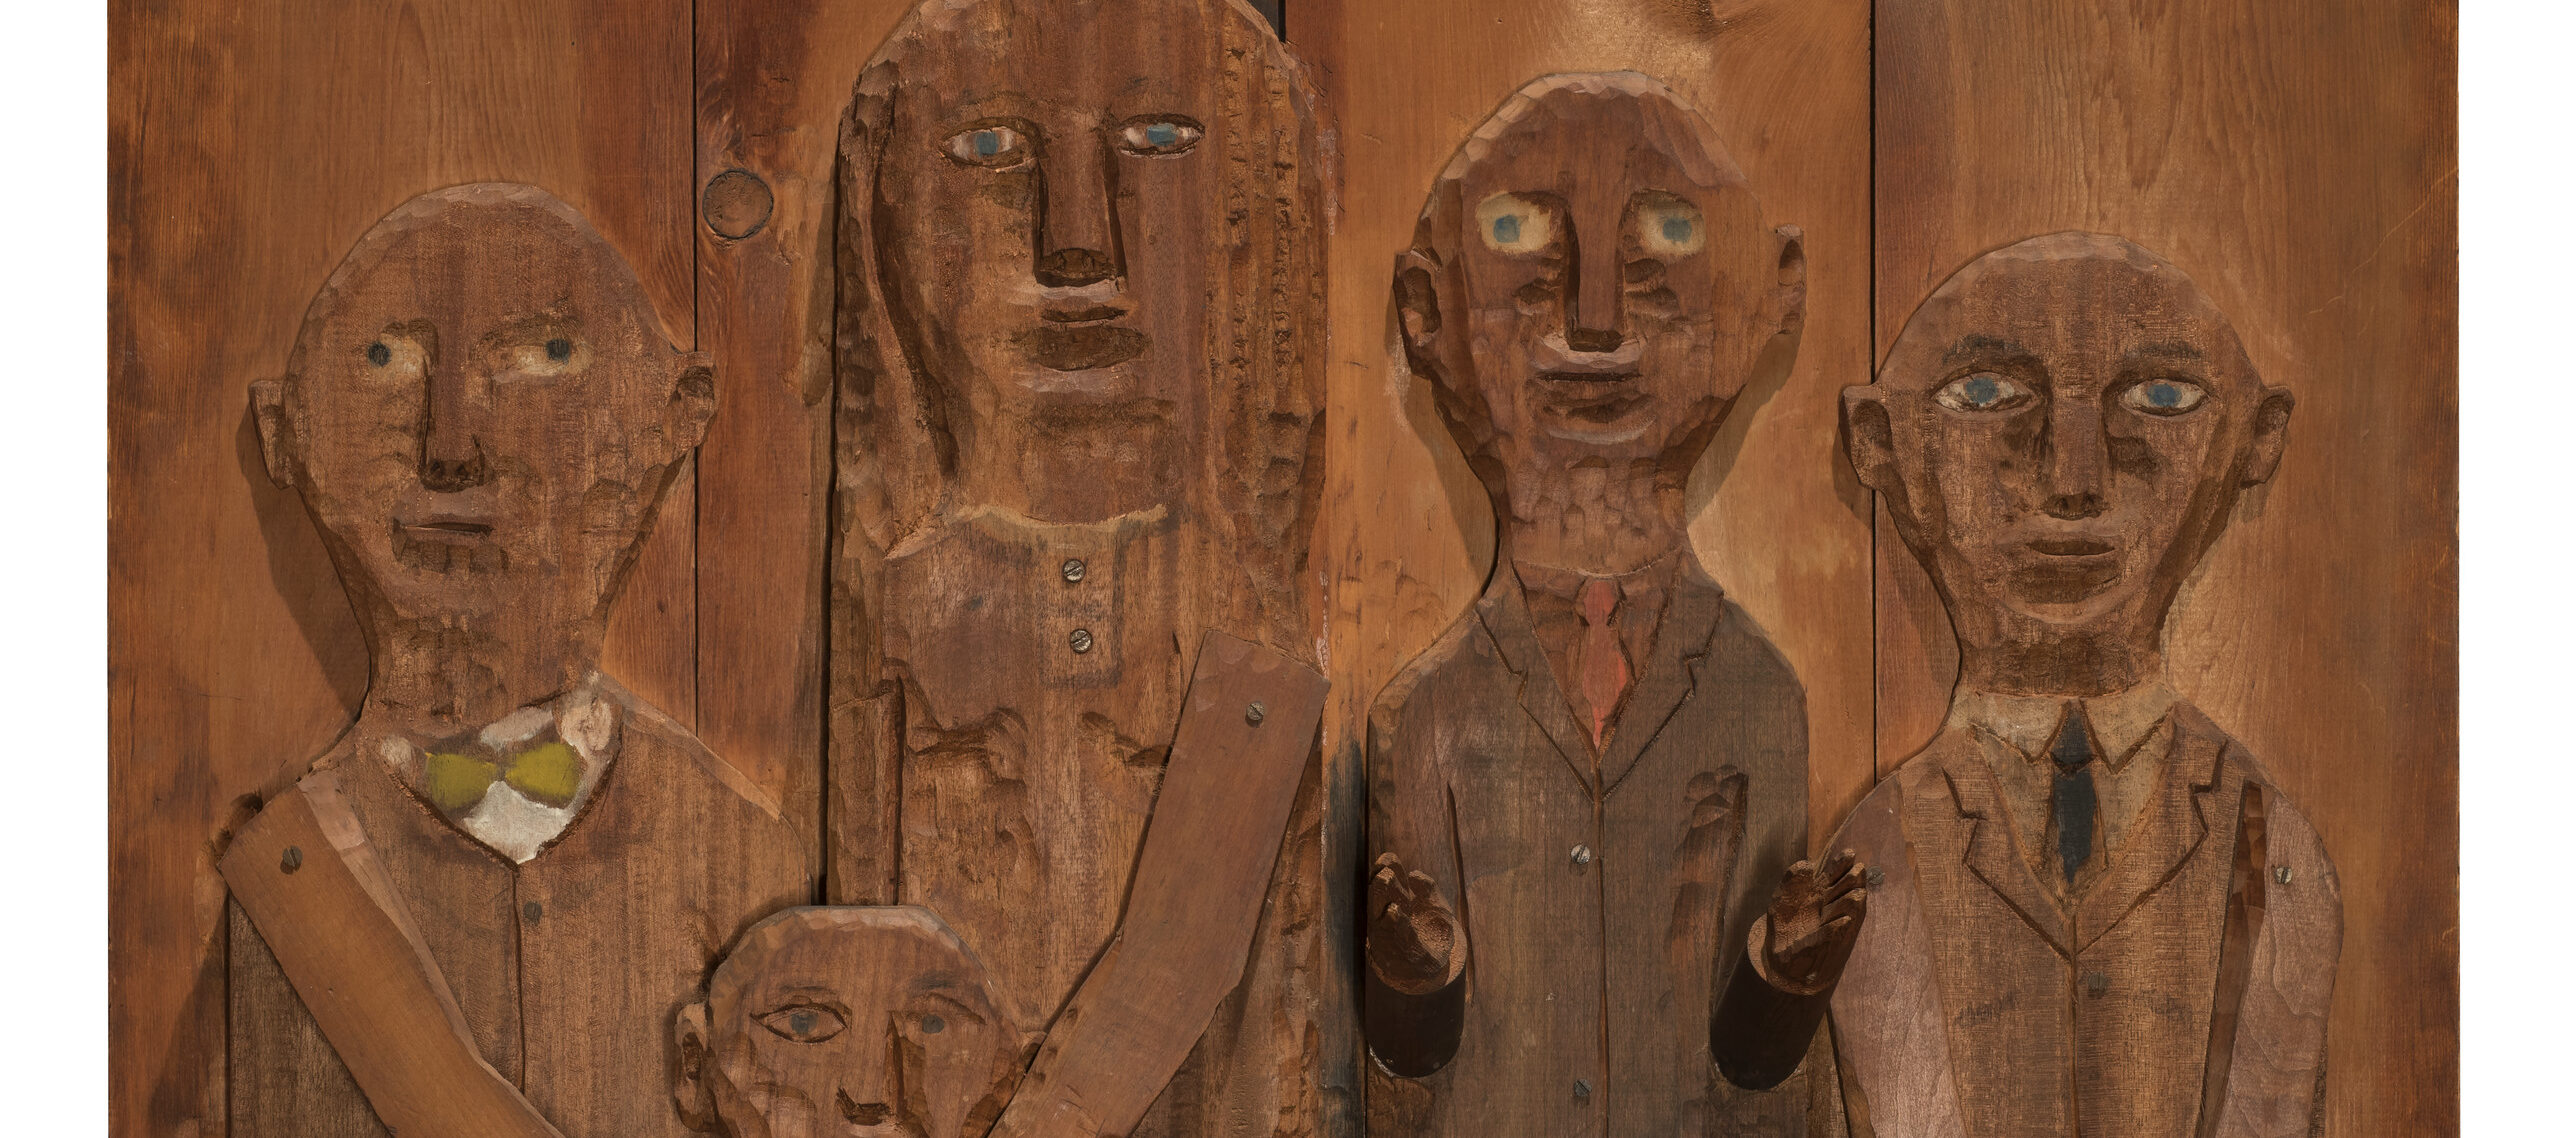 A wooden relief sculpture of four adults and one child. The two figures on the left put their hands on the shoulders of the child in front of them. The arms and hands of all figures are three dimensional and protude from the work.